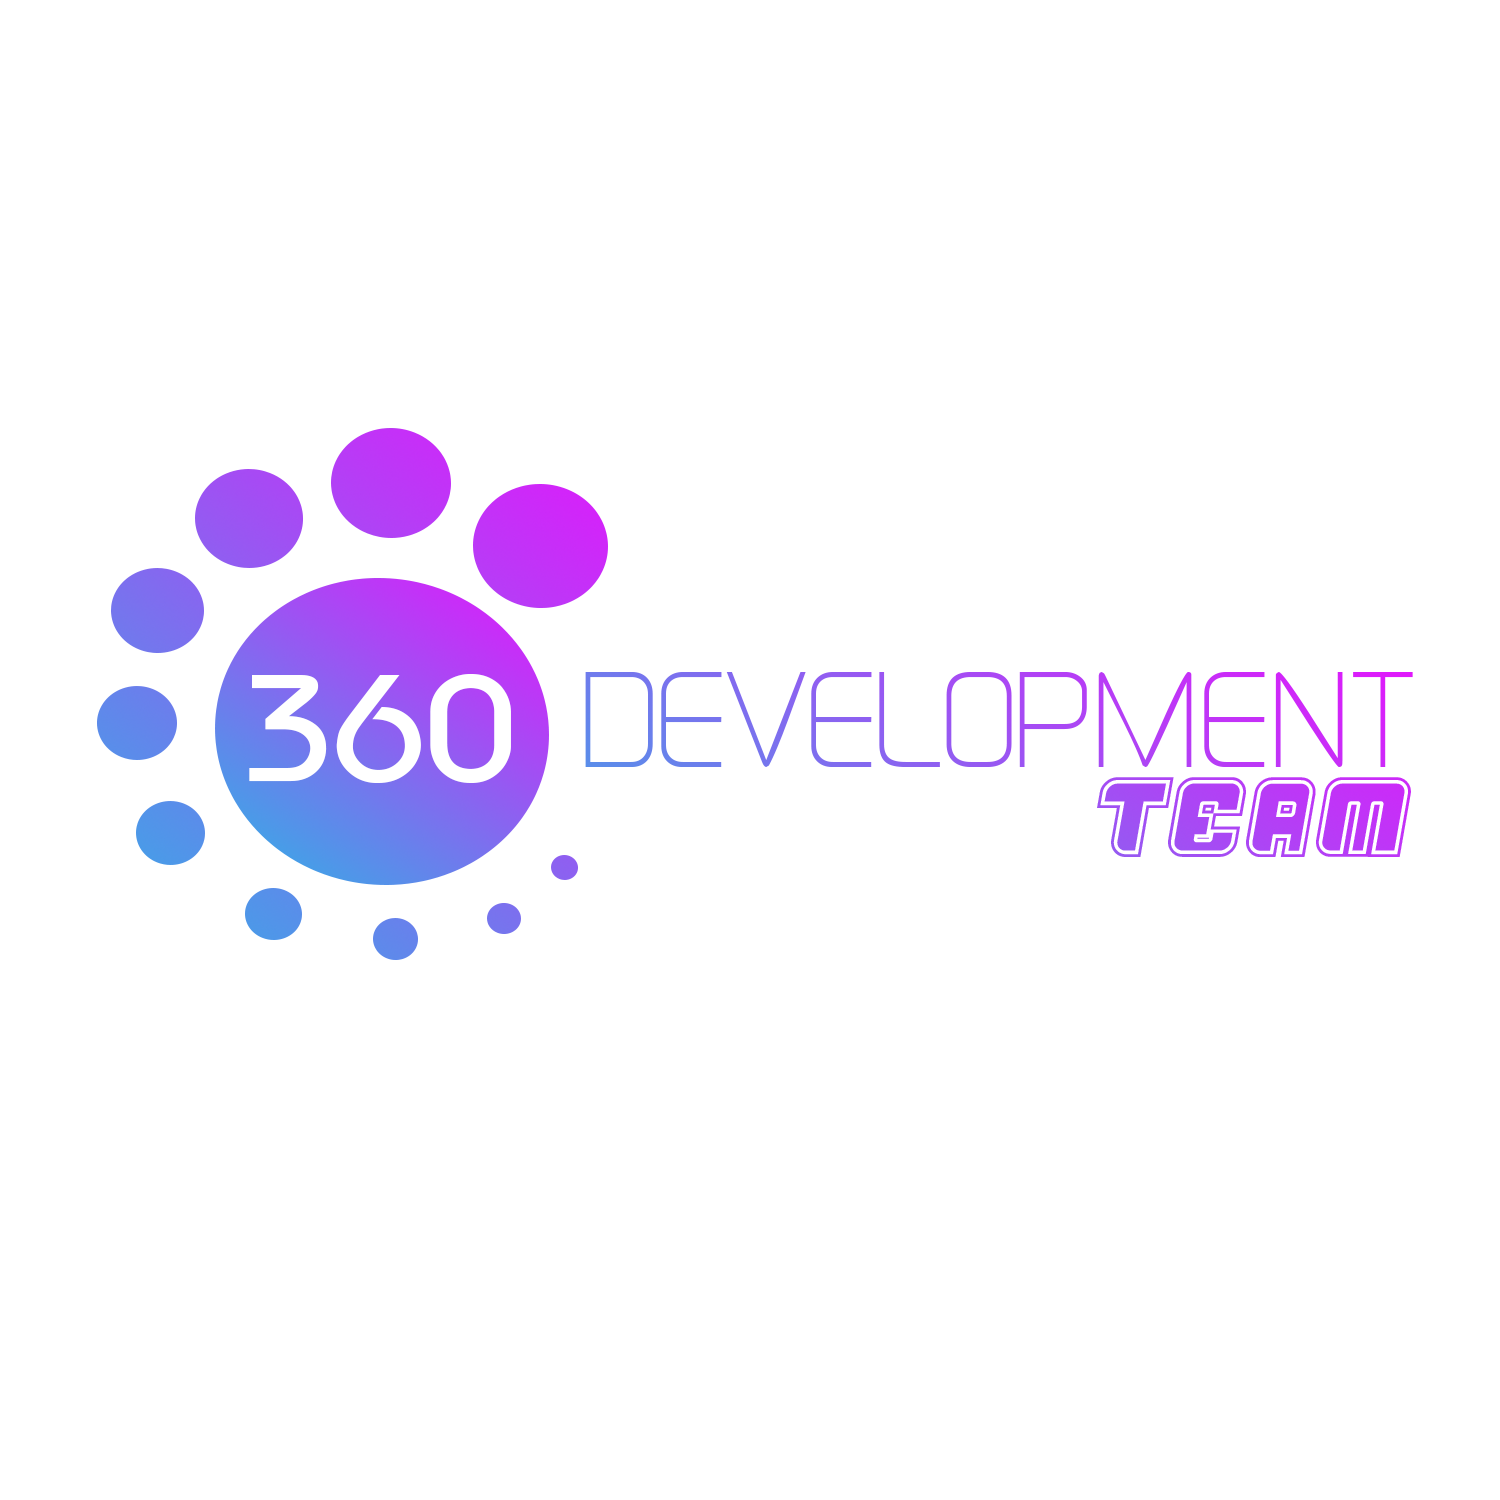 360DevTeam.com launches with a team of experts in website, game and software development